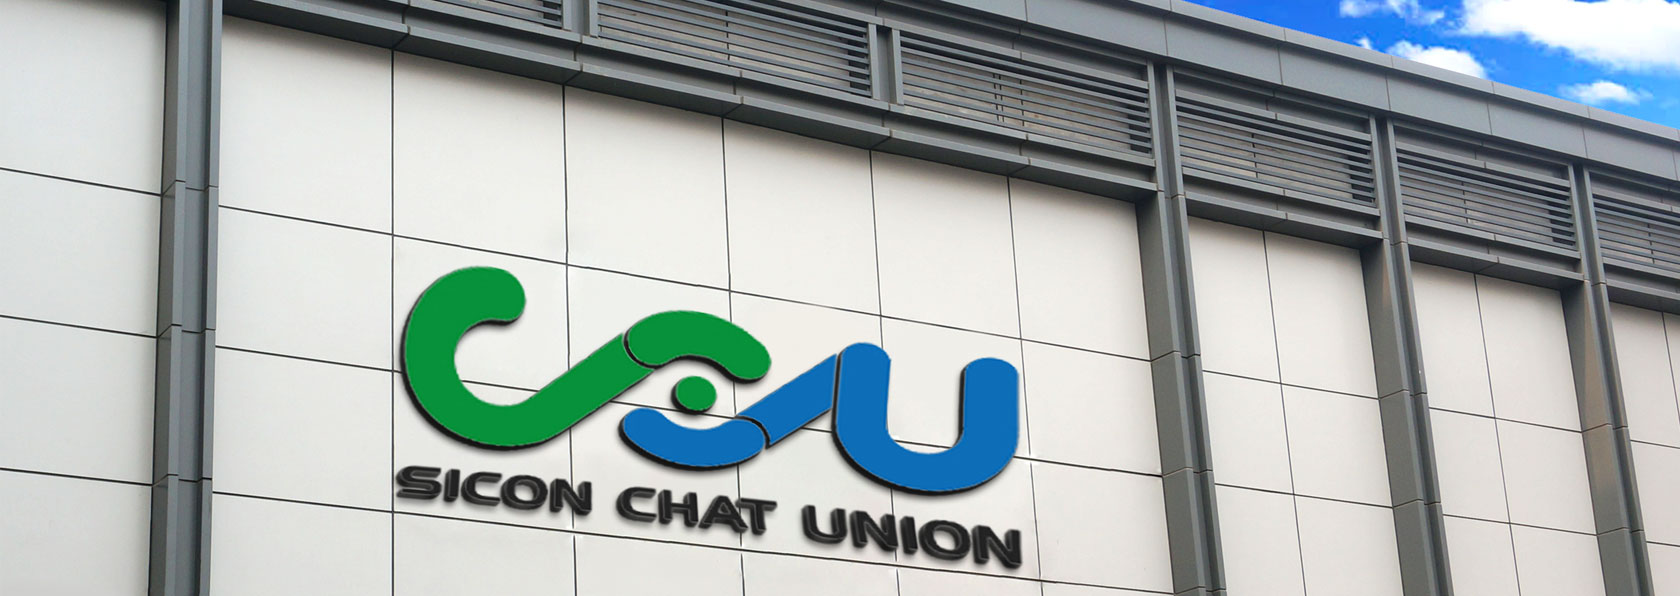 SICON CHAT UNION